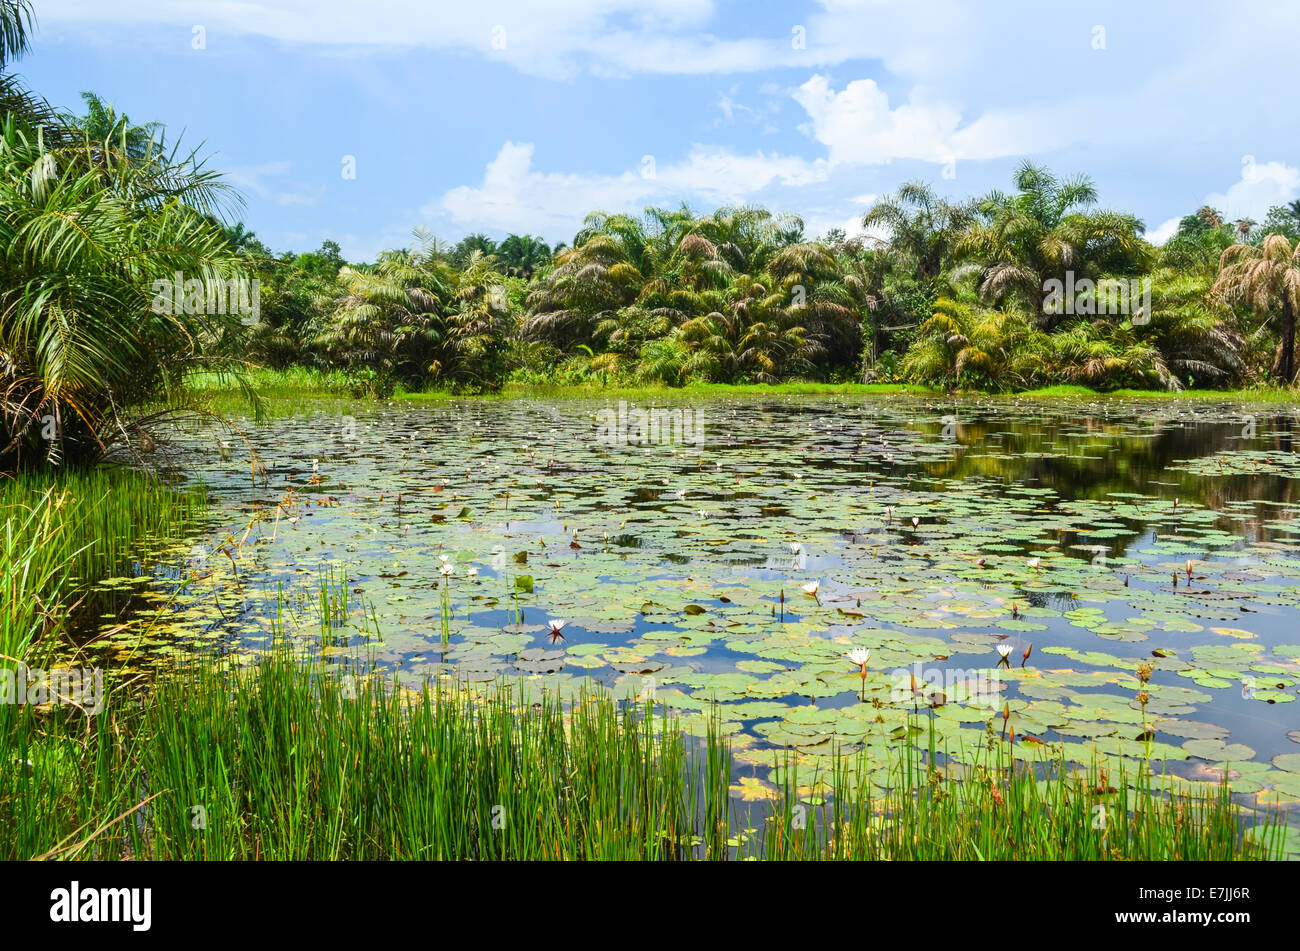 Palm trees and water lilies in a swamp in Liberia, Africa - Stock Image